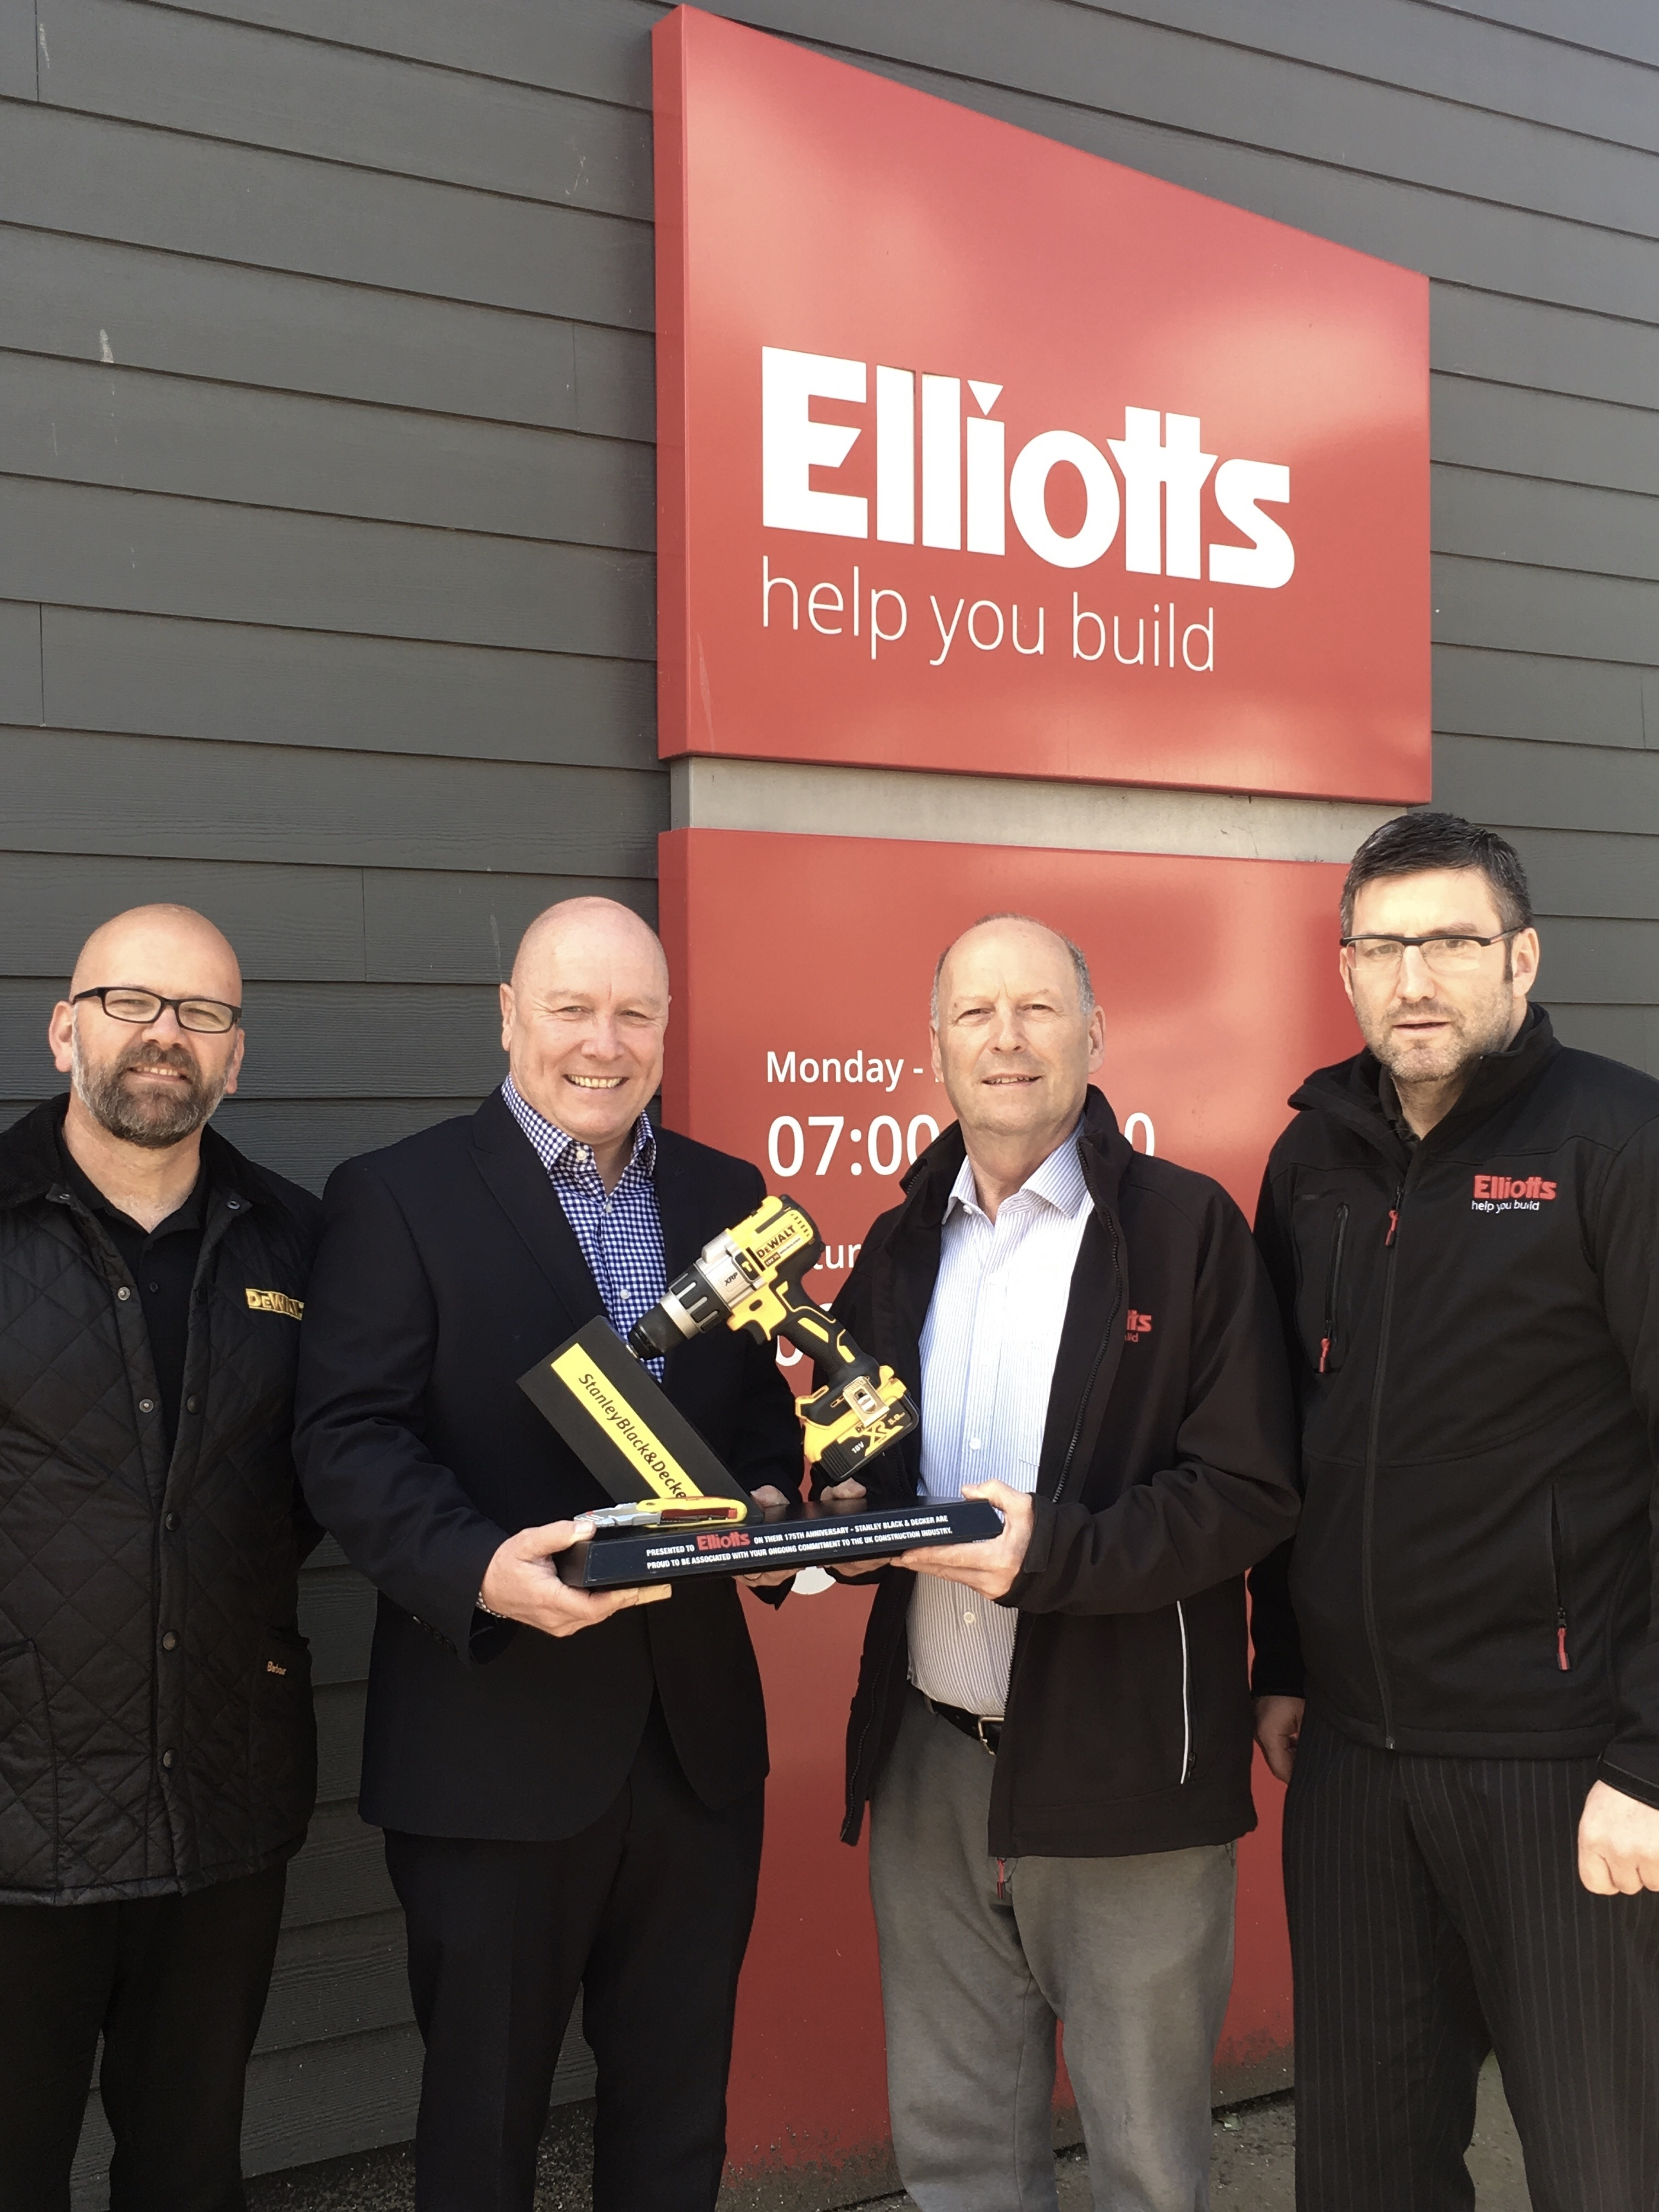 DeWalt's General Sales Manager, Mick Gill, presents a 175th anniversary commemorative trophy to Elliotts Chariman, Stuart Mason-Elliott